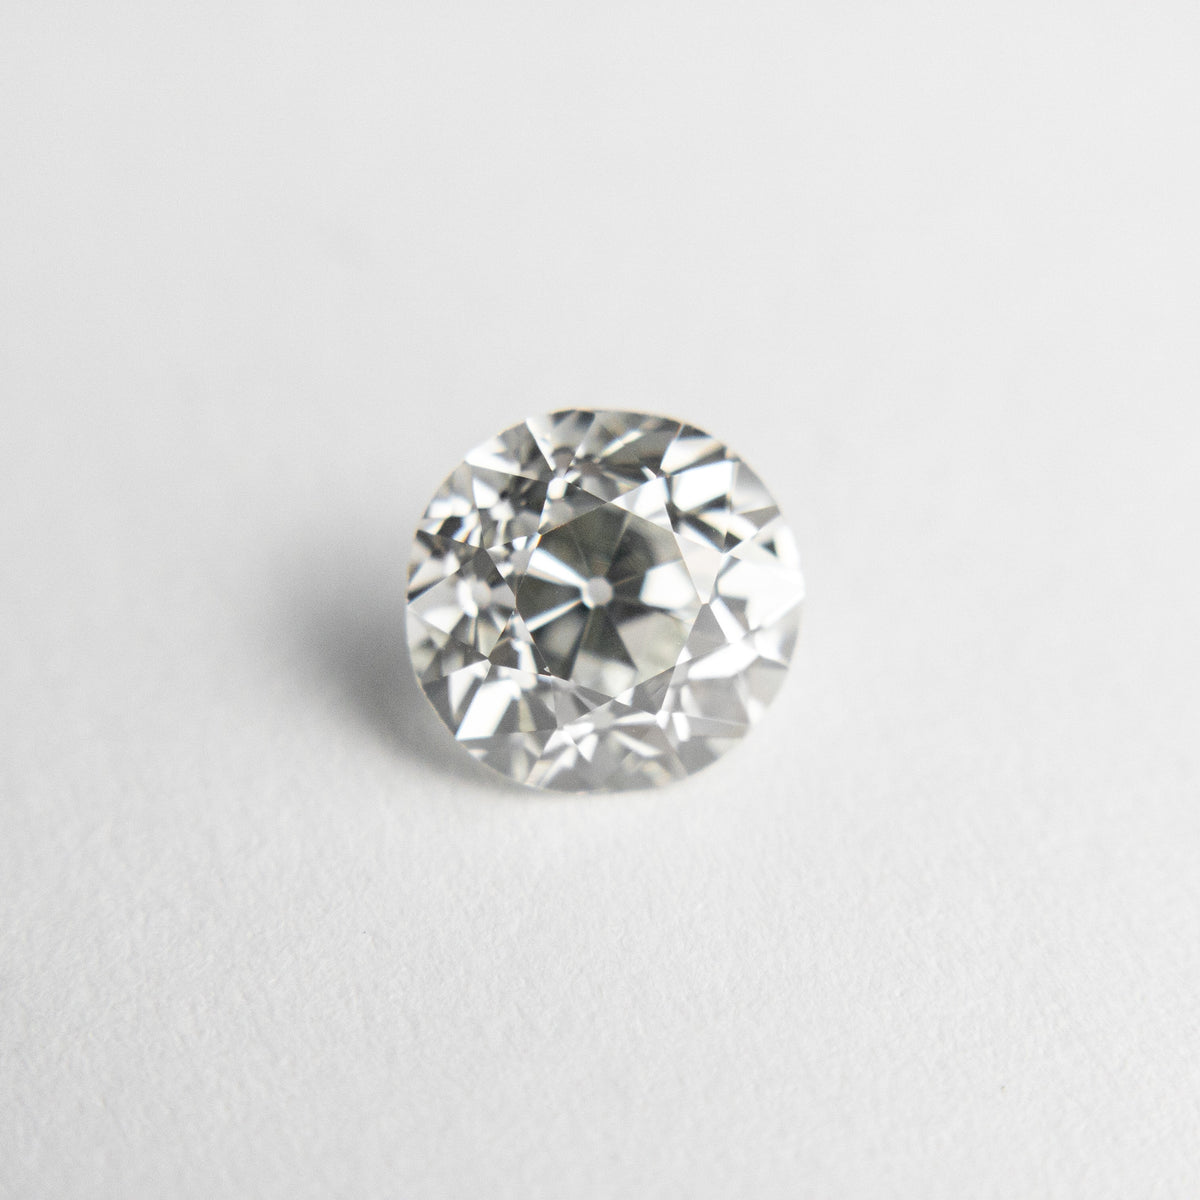 0.96ct 6.14x6.01x4.06mm GIA VS1 I Antique Old European Cut 18649-01